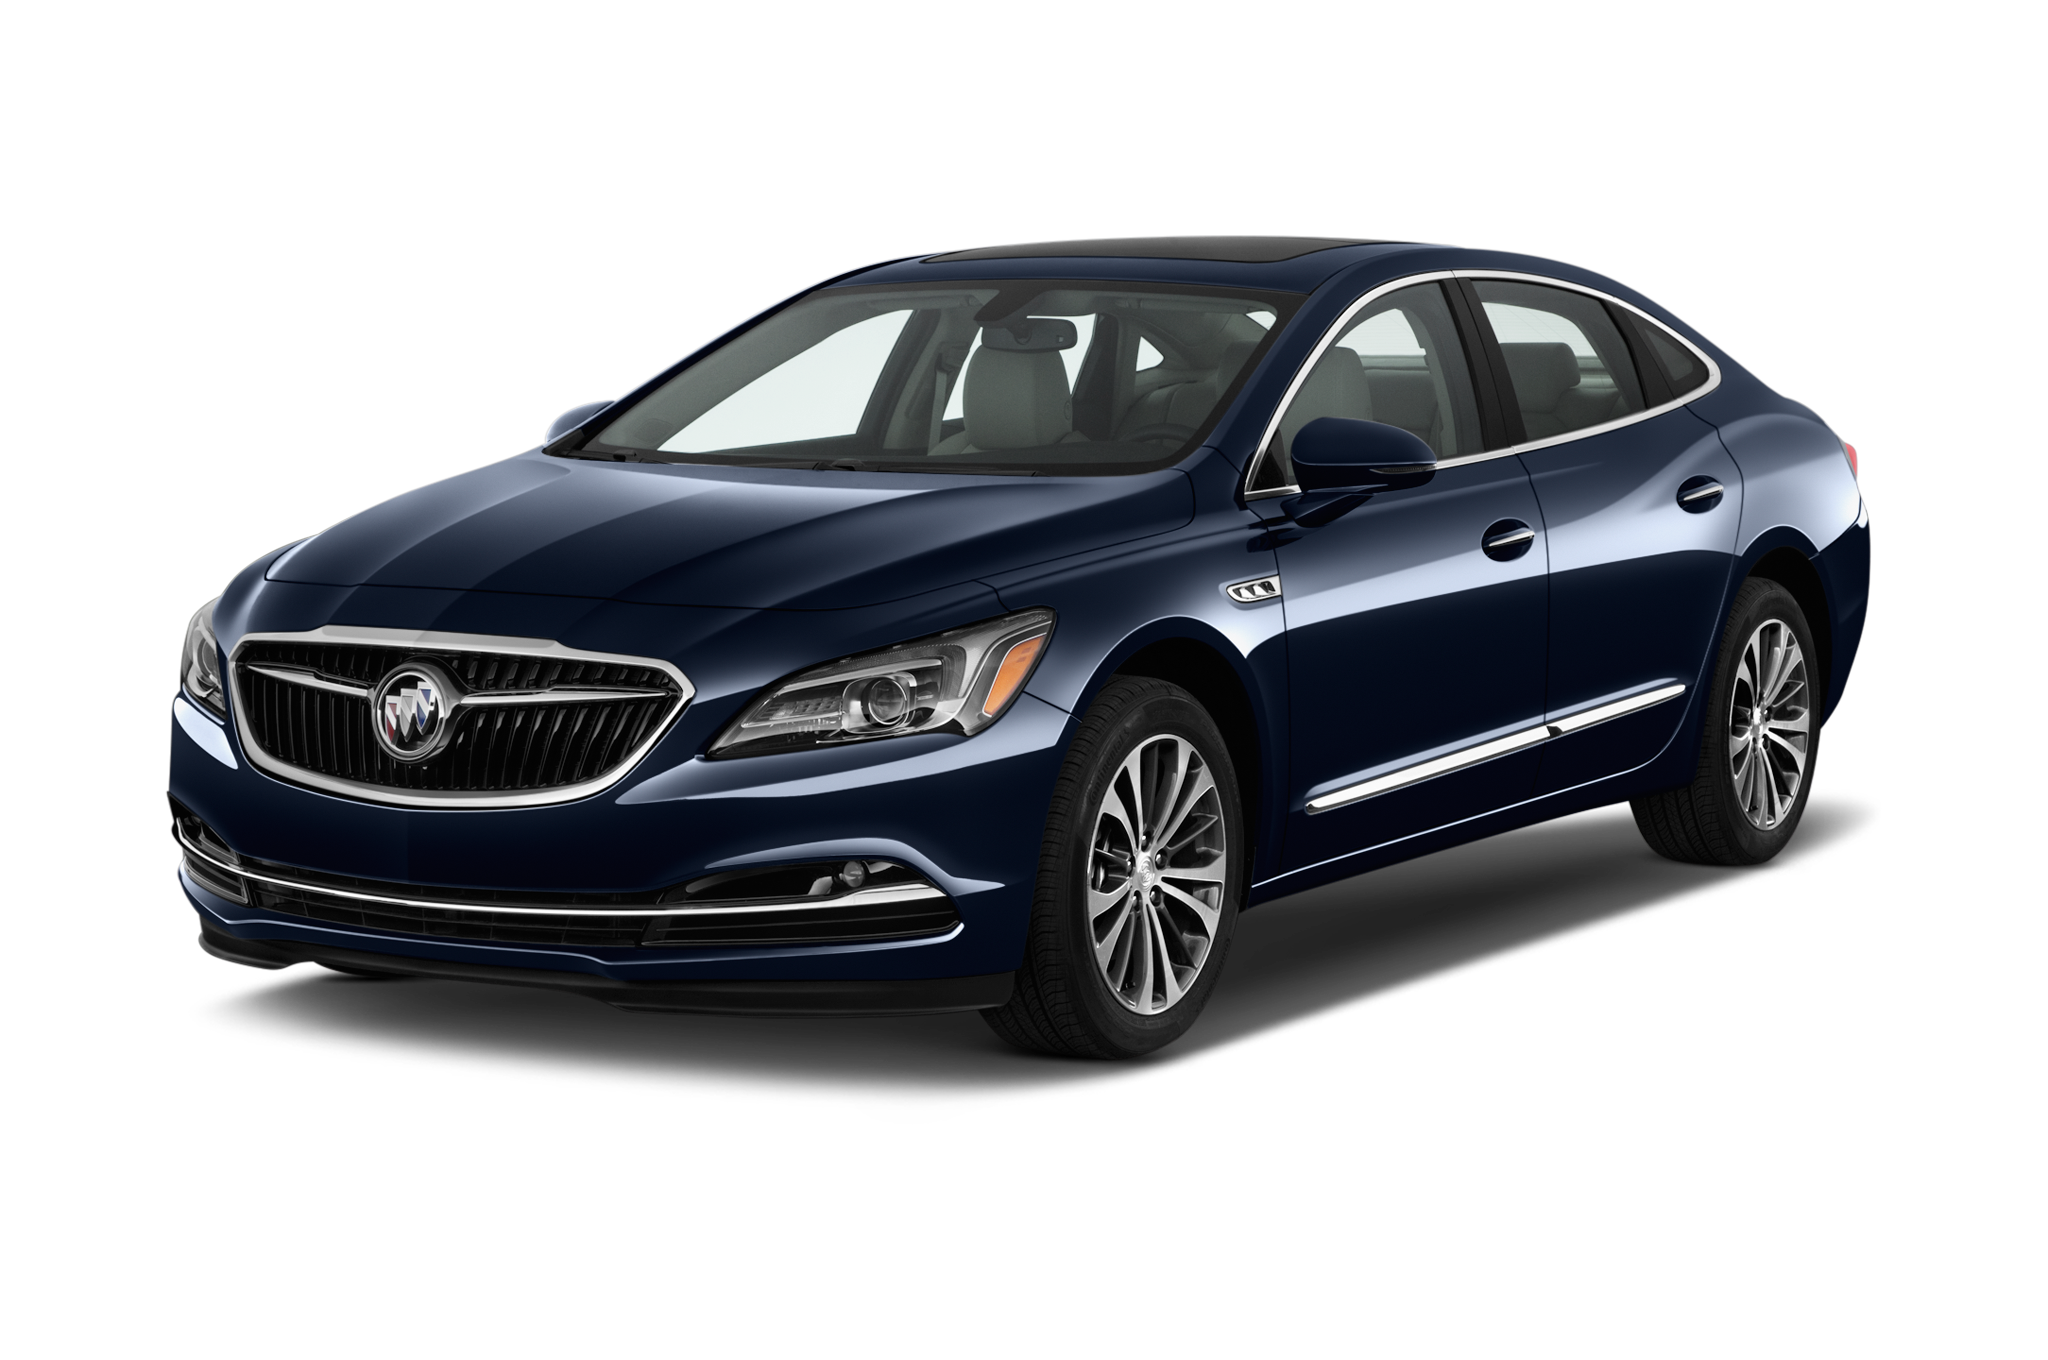 2017 buick lacrosse grille teased debuts at l a auto show. Black Bedroom Furniture Sets. Home Design Ideas